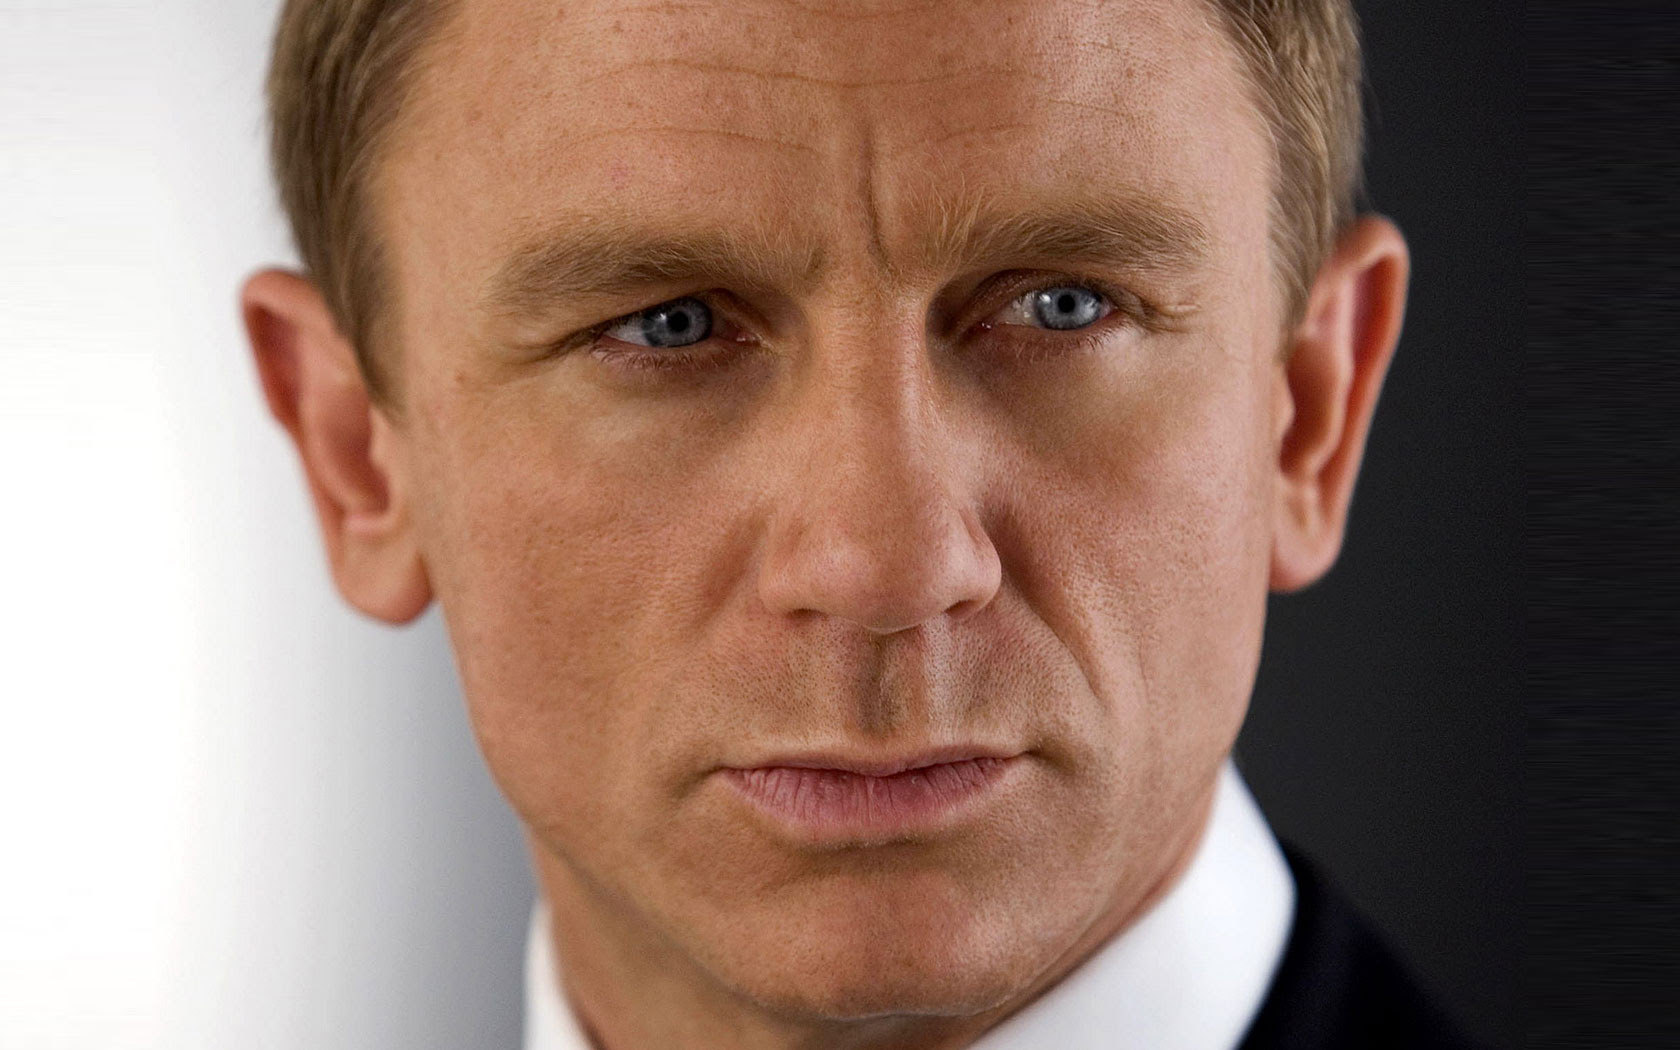 http://entertainmentwithmonique.files.wordpress.com/2008/11/quantum-of-solace-daniel-craig-14571.jpg